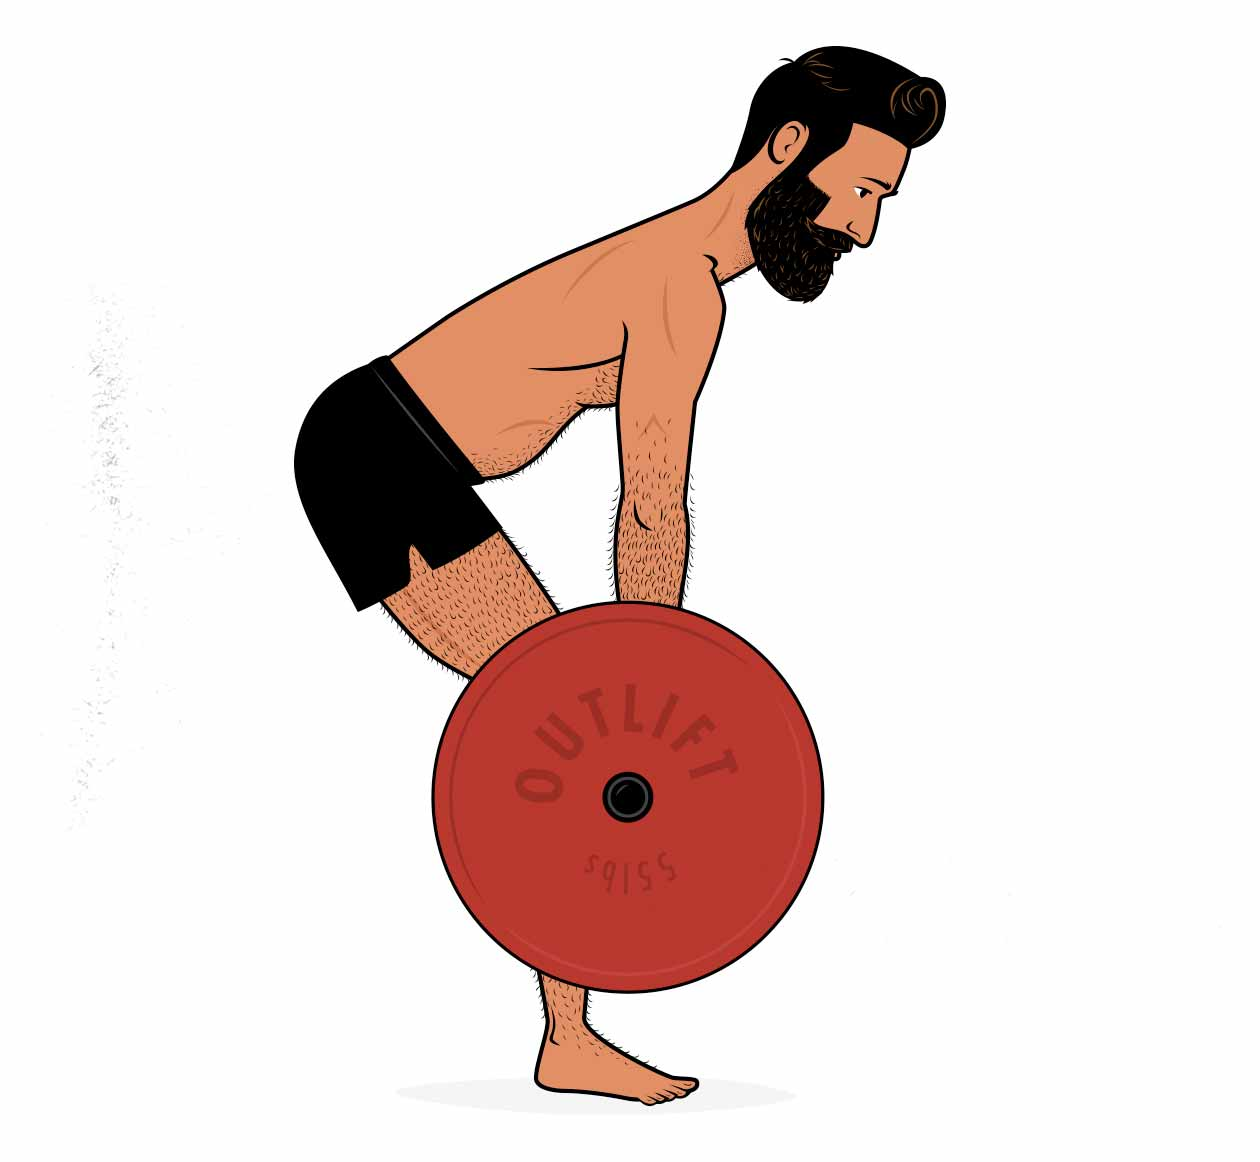 Illustration of a skinny fat man doing a barbell deadlift to build muscle and burn fat.